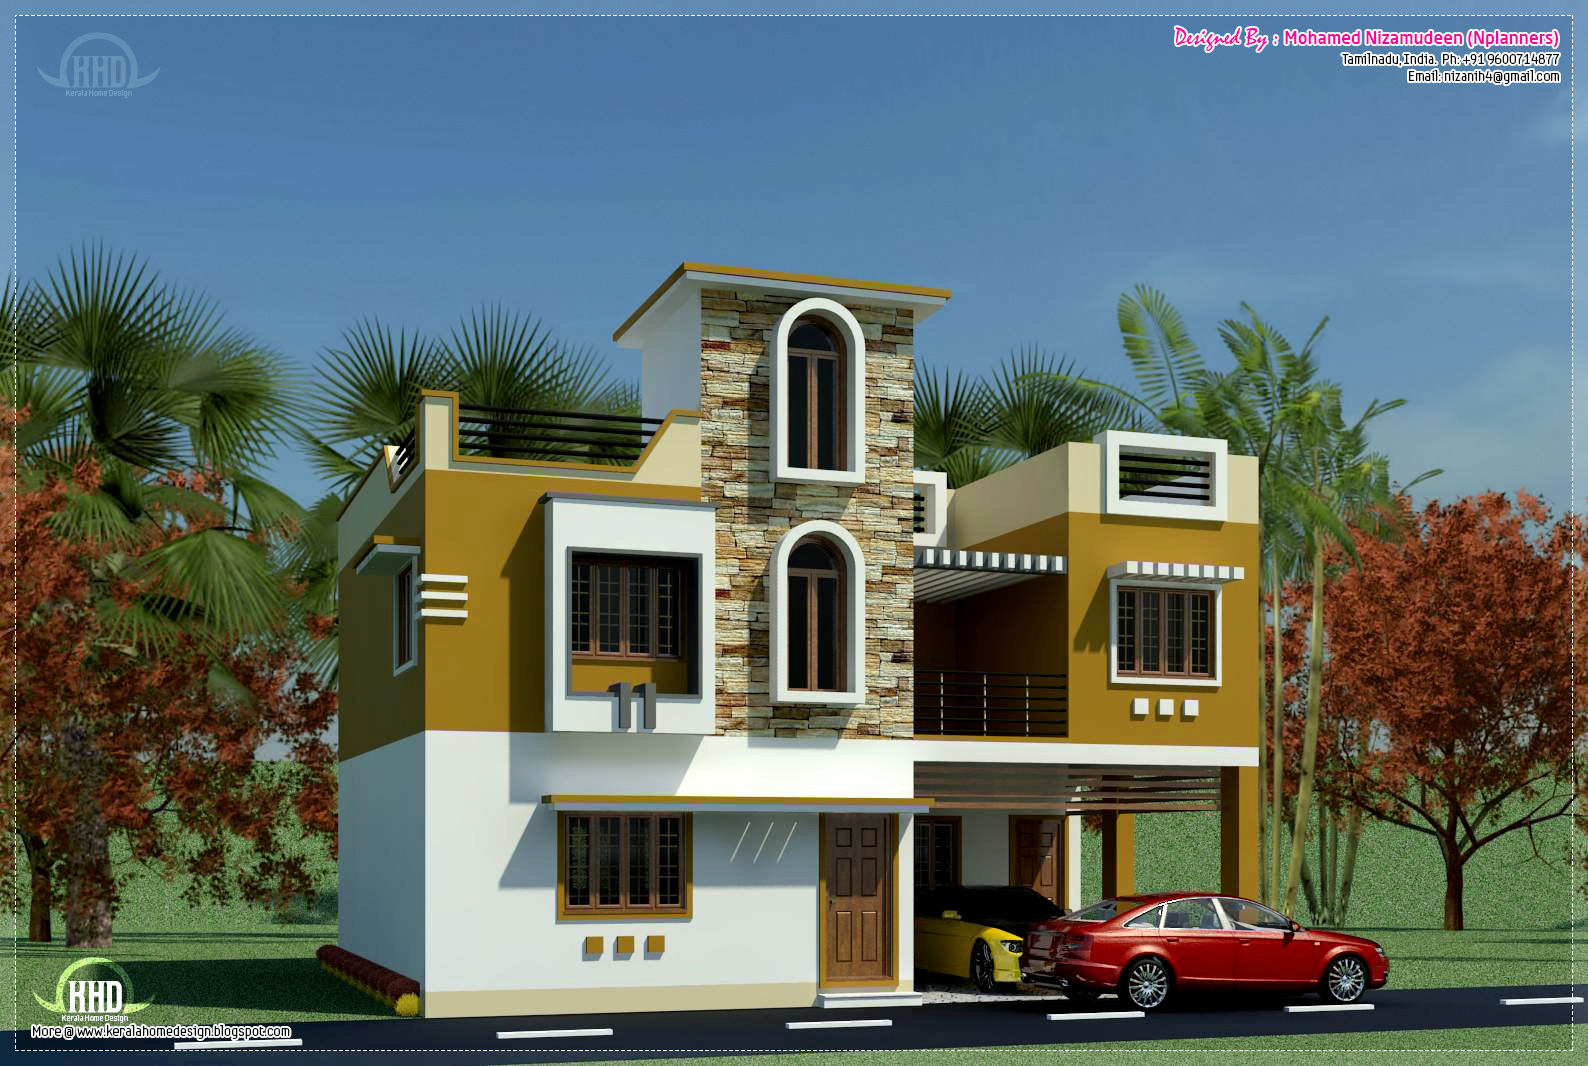 Siddu buzz online kerala home design Good house designs in india